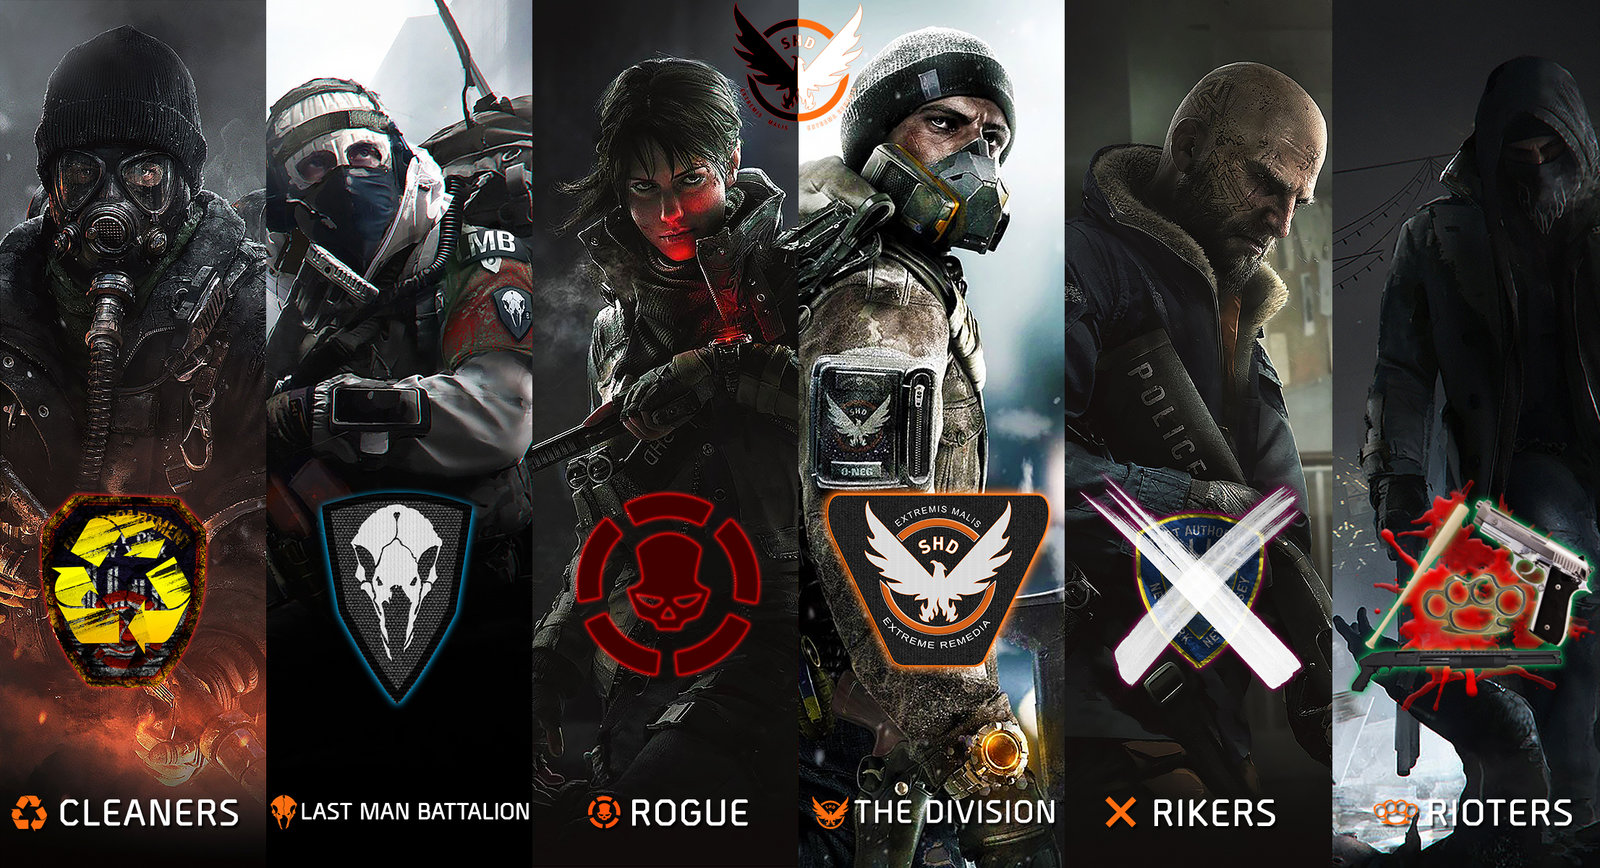 the_division_factions_by_blackbeast-d9ria6n.jpg